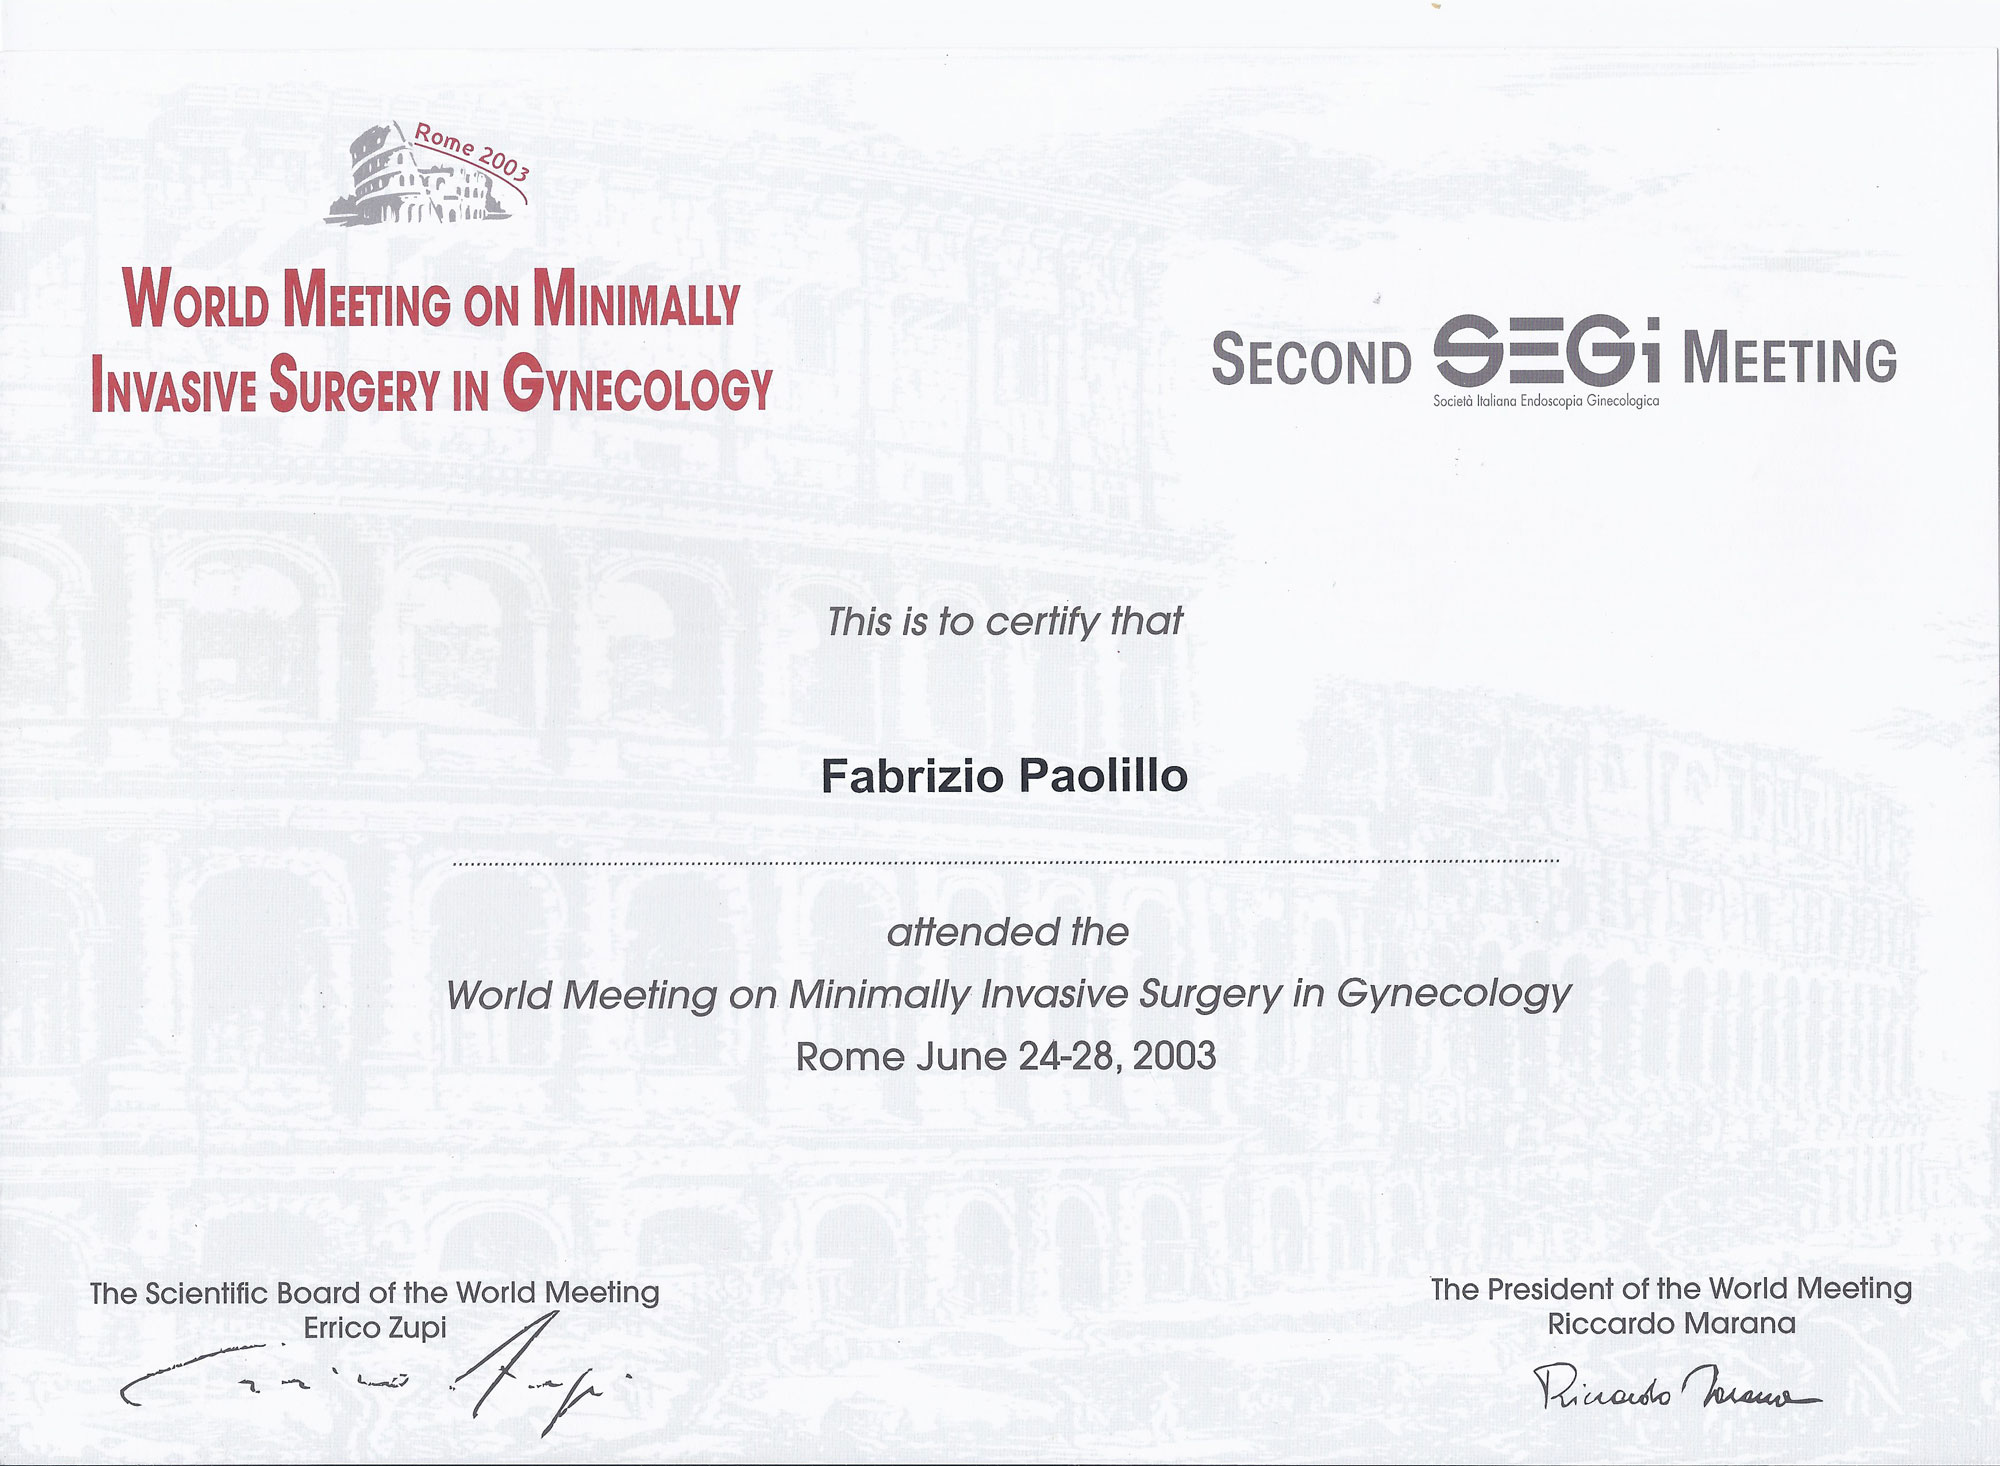 World Meeting on Minimally Invasive Surgery in Gynecology